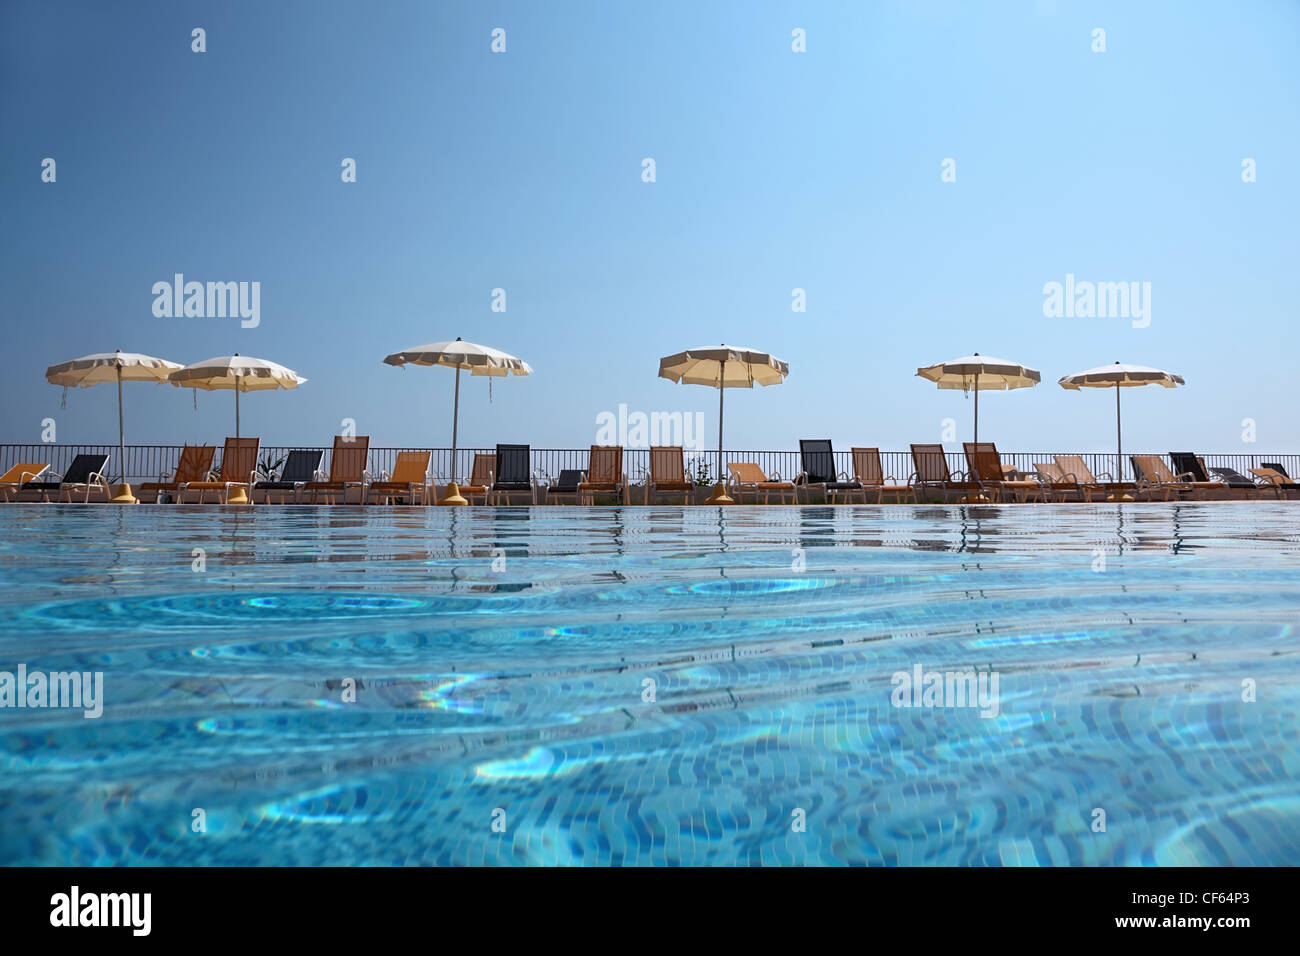 On Edge Of Pool Near Fence Deck Chairs Stand With Opened Beach Umbrellas,  Underwater Package Shot